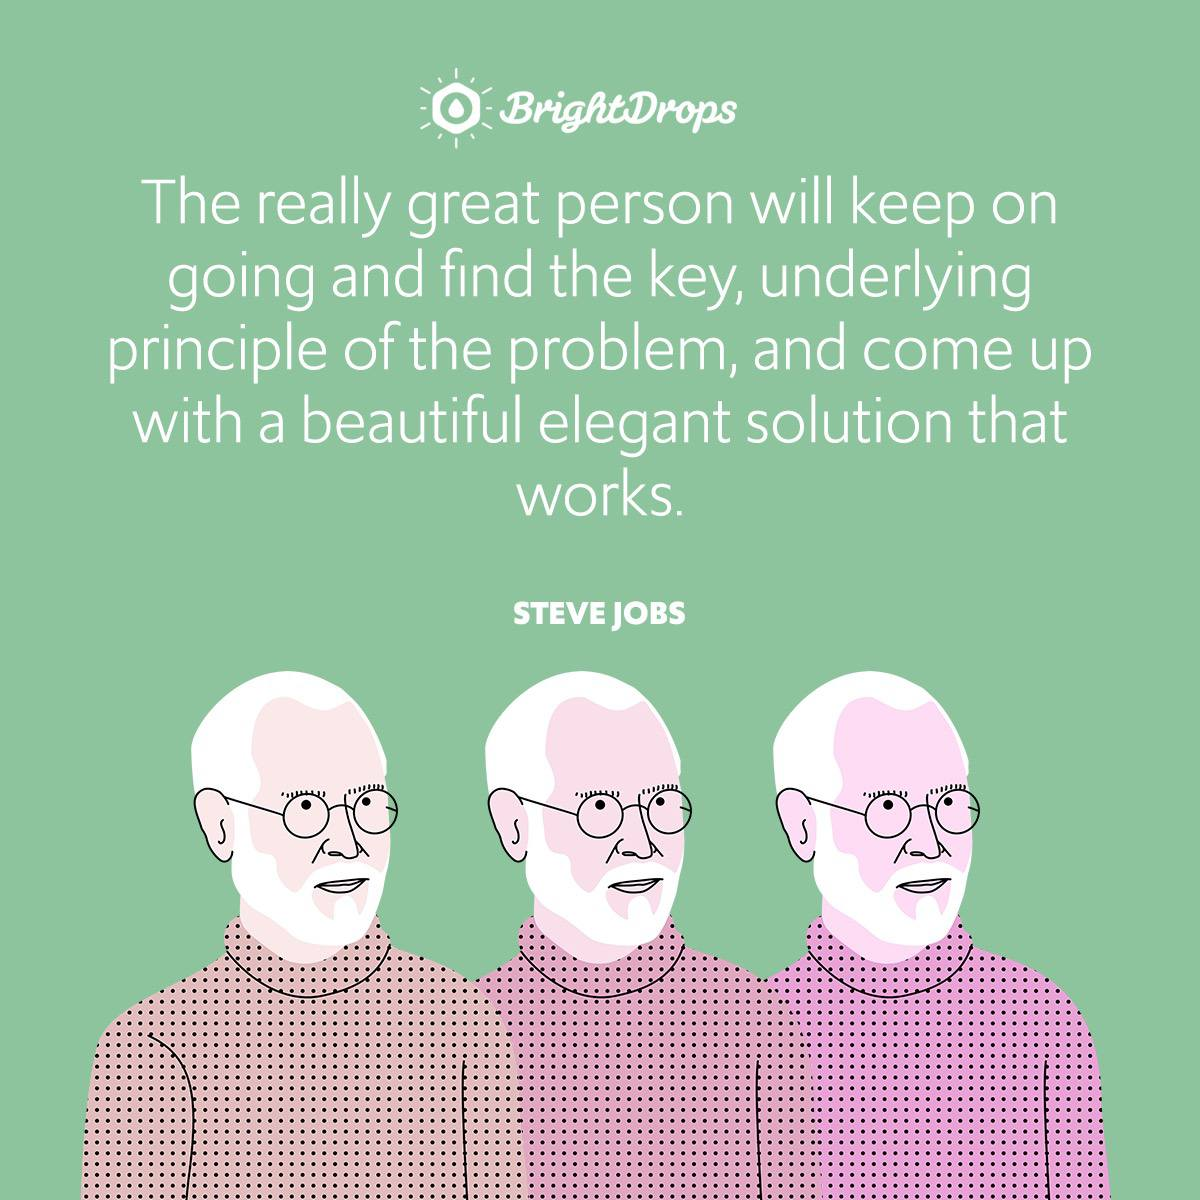 The really great person will keep on going and find the key, underlying principle of the problem, and come up with a beautiful elegant solution that works.